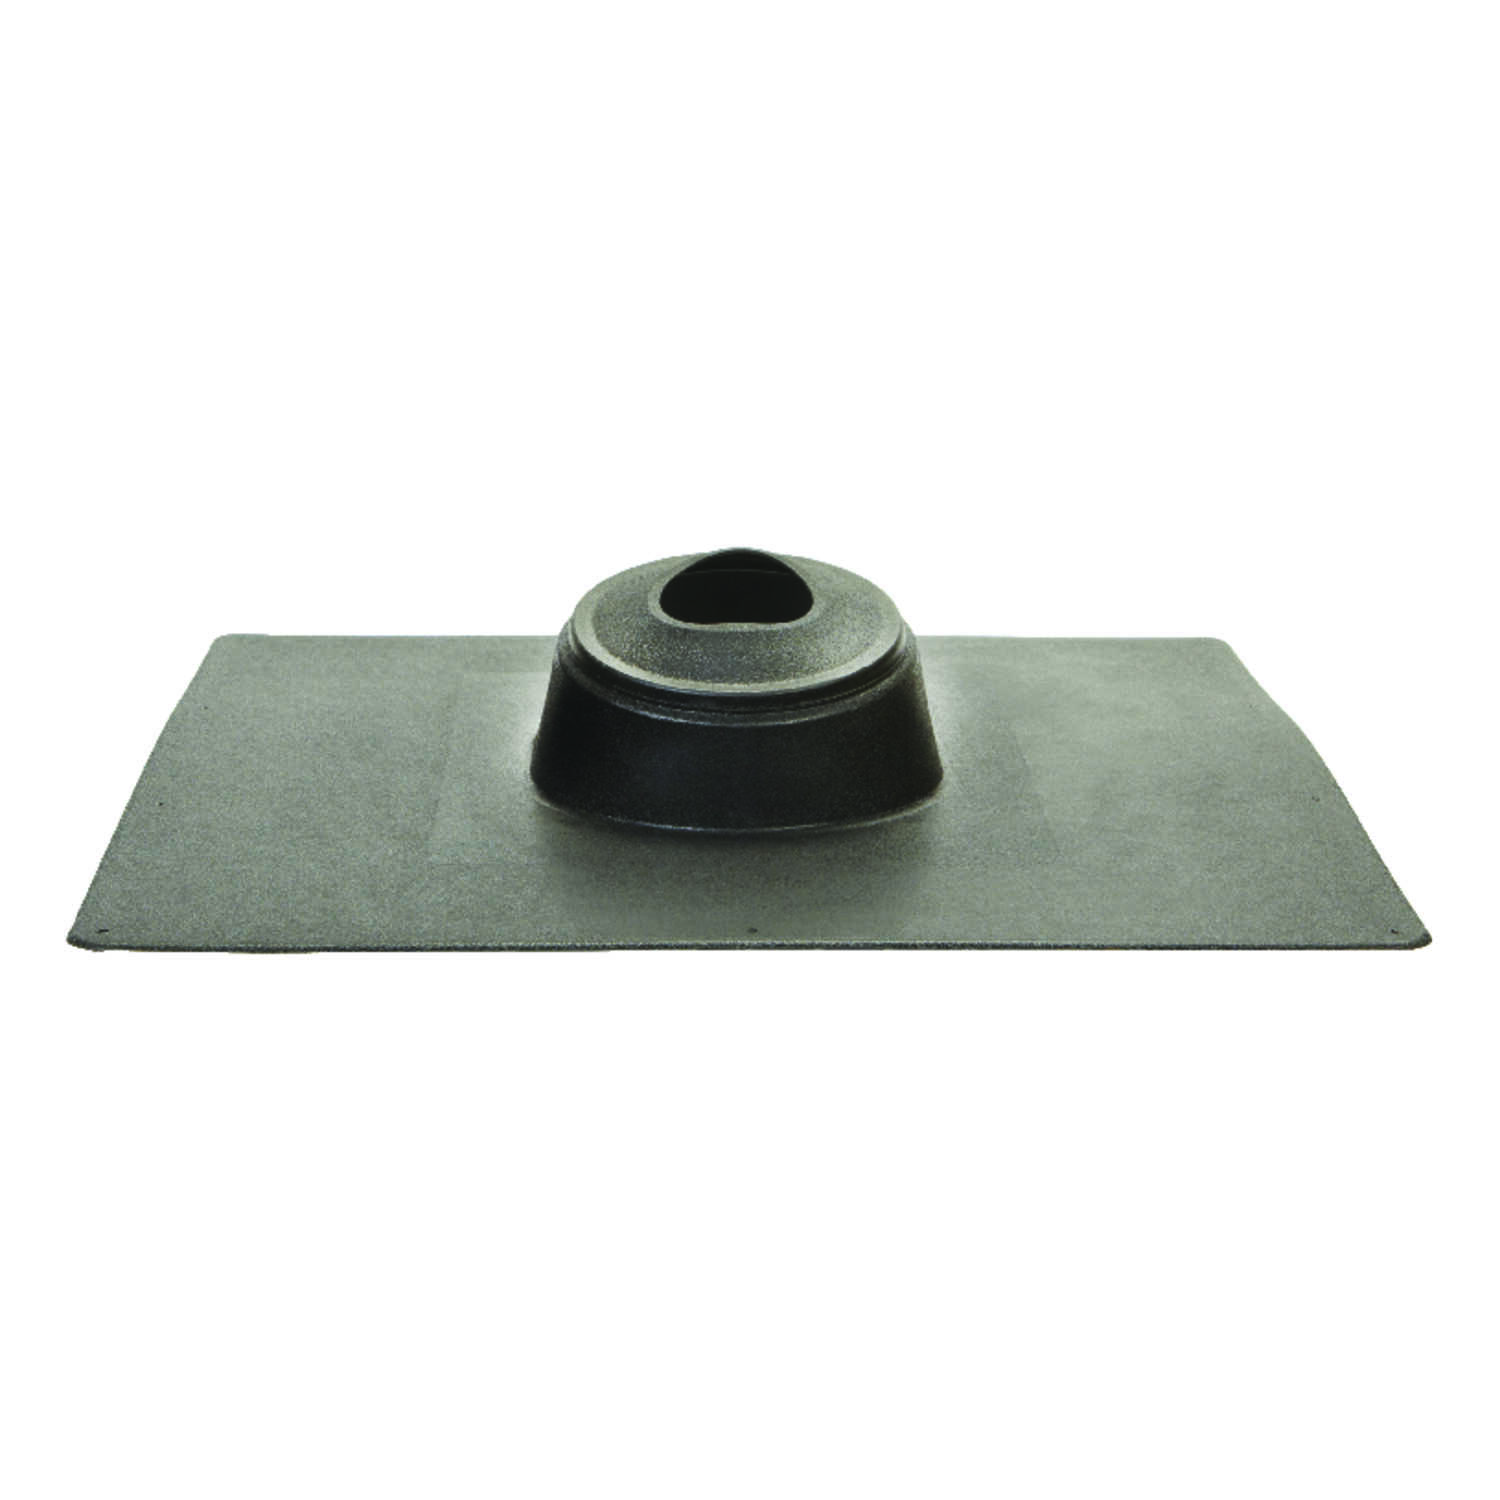 Oatey  No-Calk  3 in. H x 18 in. W x 18 in. L Black  Thermoplastic  Square  Roof Flashing